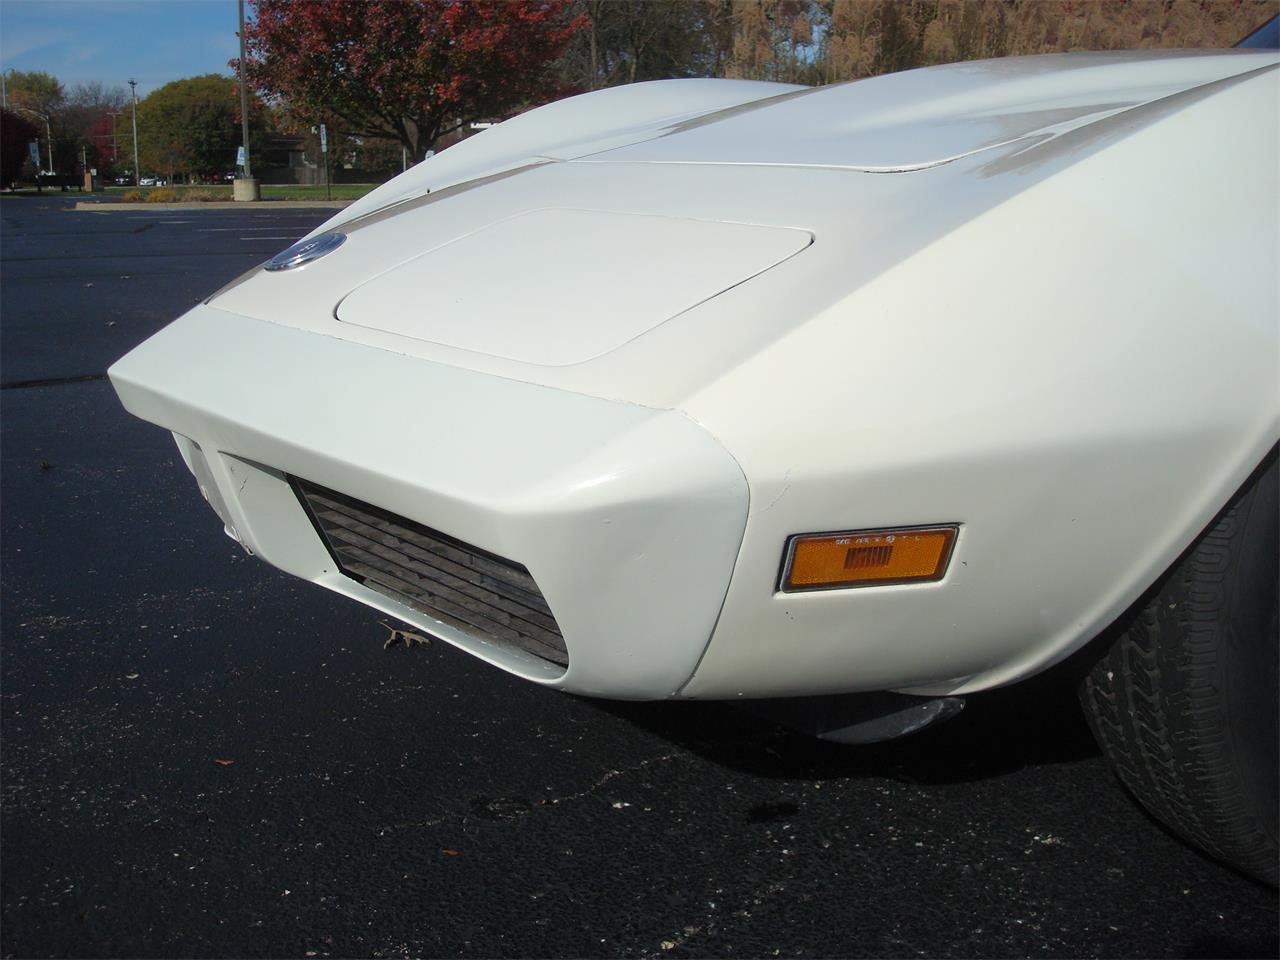 Large Picture of 1974 Chevrolet Corvette located in Illinois - $10,900.00 - OOF3